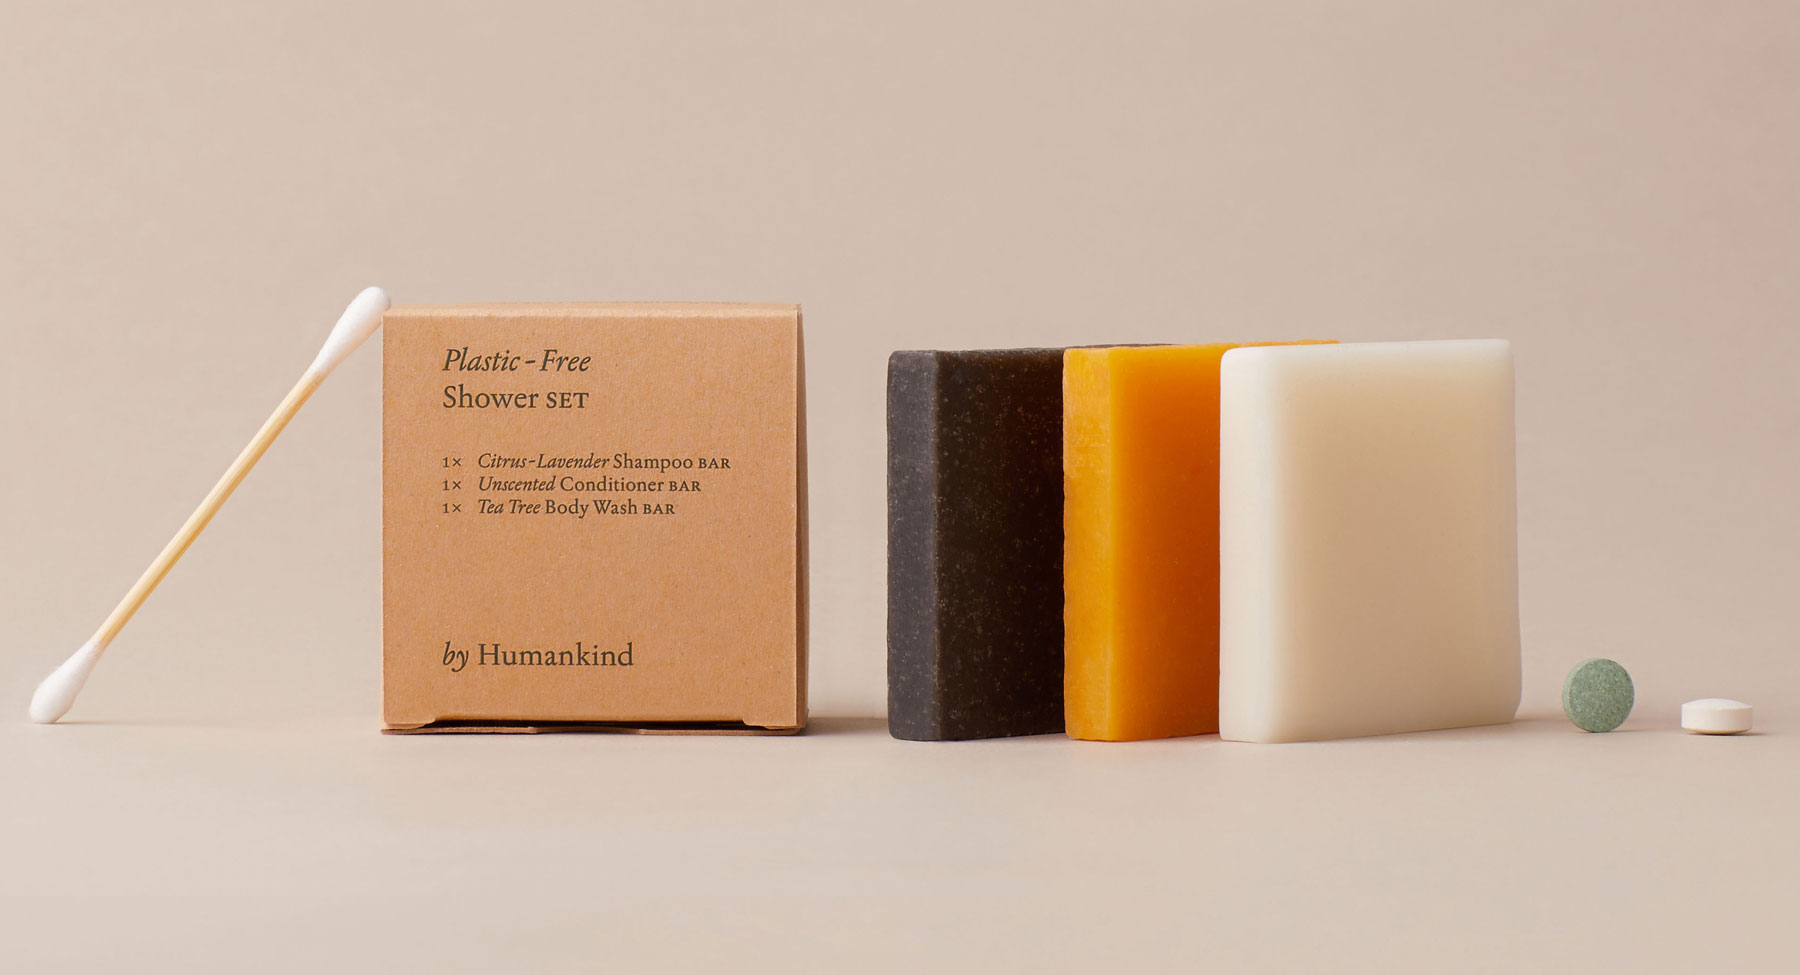 6 Clever Items (9/11/20) - by Humankind Plastic-Free Travel Set